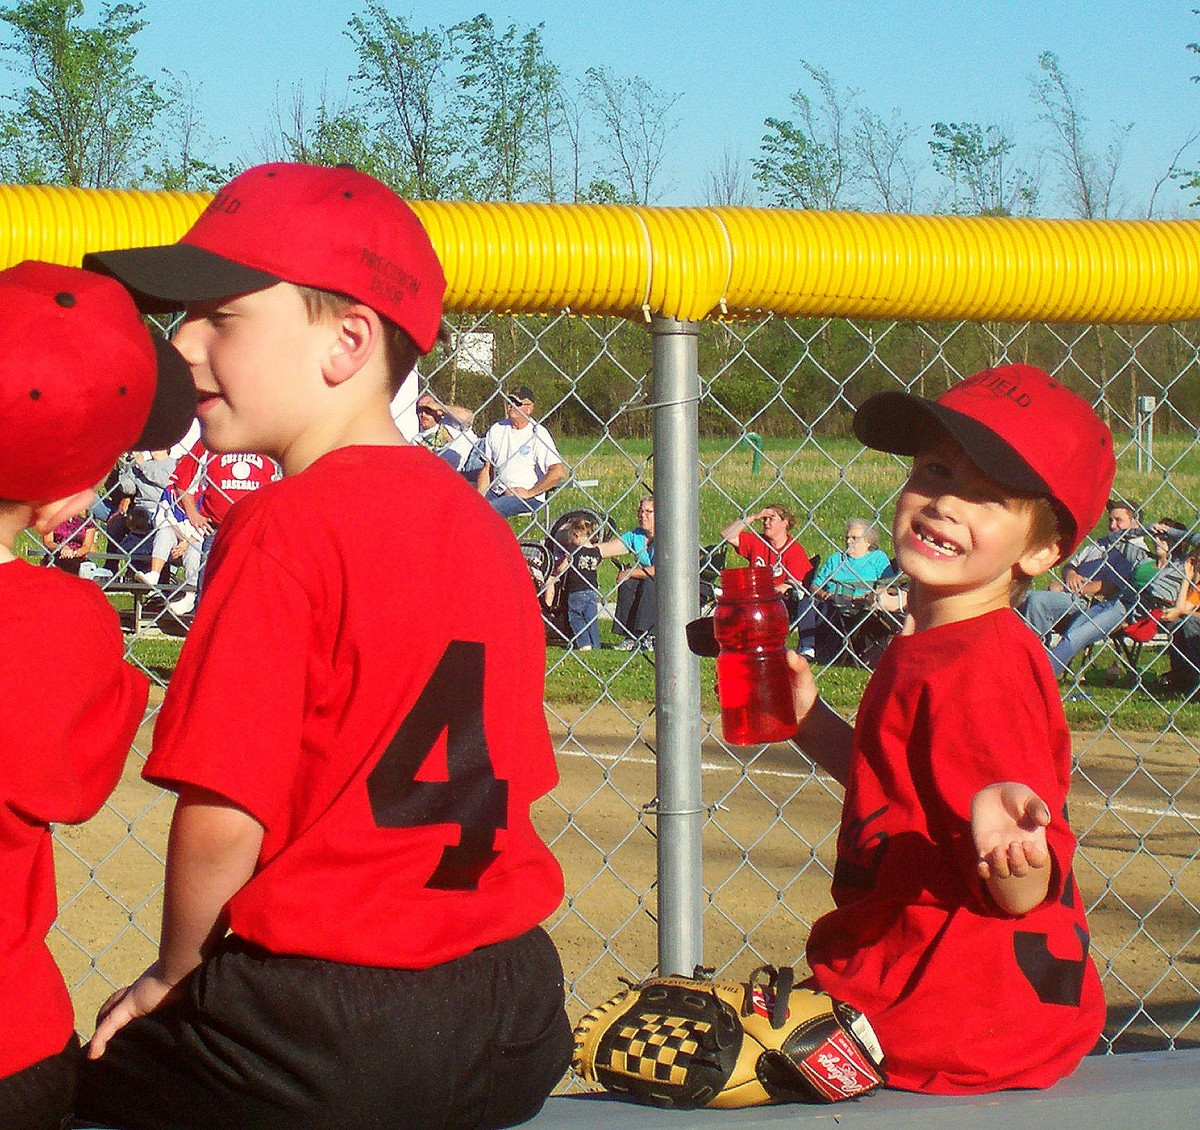 Little League Baseball: Basic Pitching Mechanics and Rules